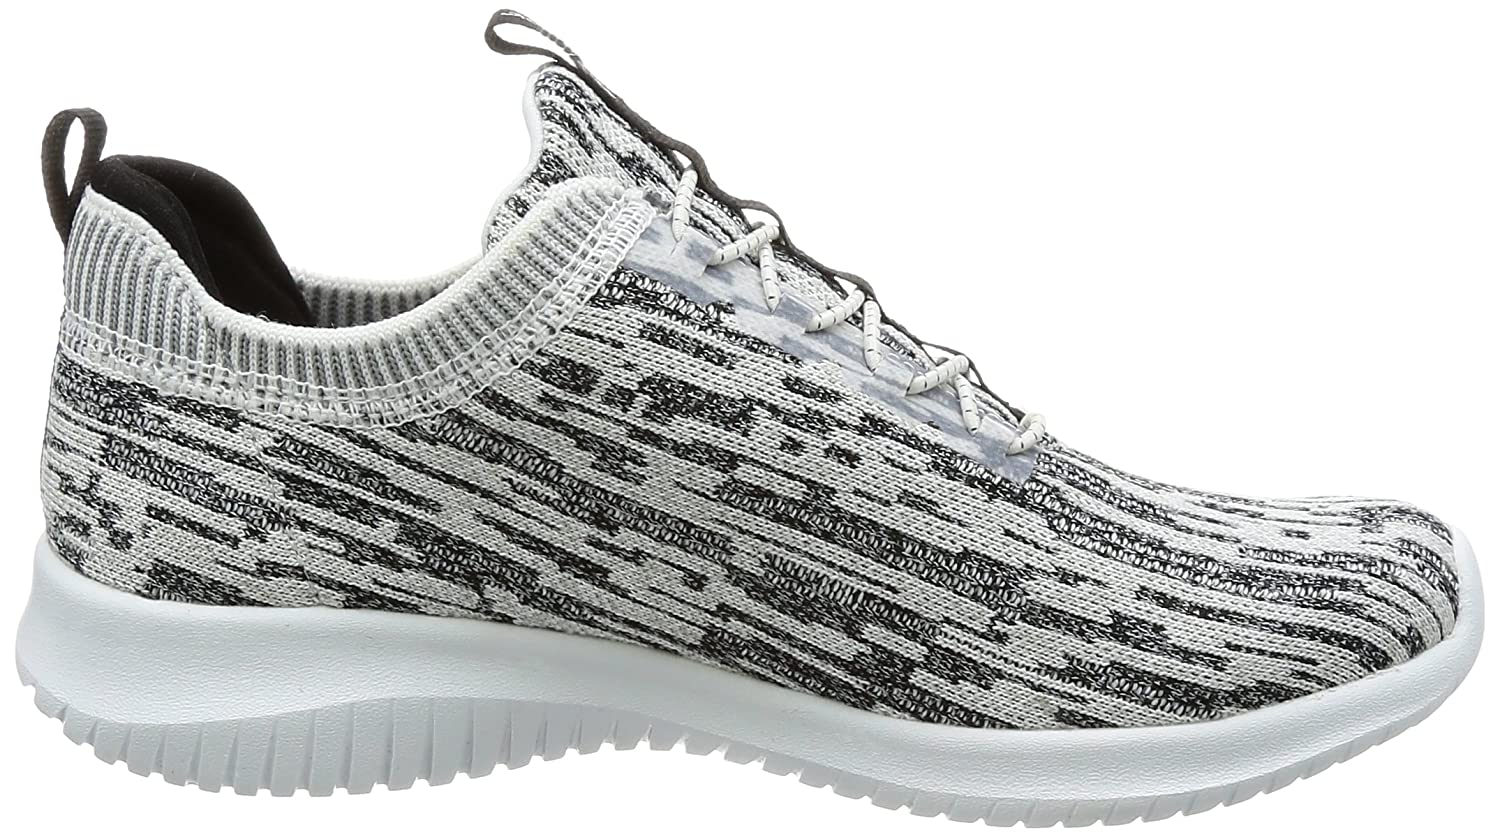 Skechers Women's Ultra Flex Bright Horizon US|White/Black Sneaker B01MZC6D8V 9.5 B(M) US|White/Black Horizon ed8877